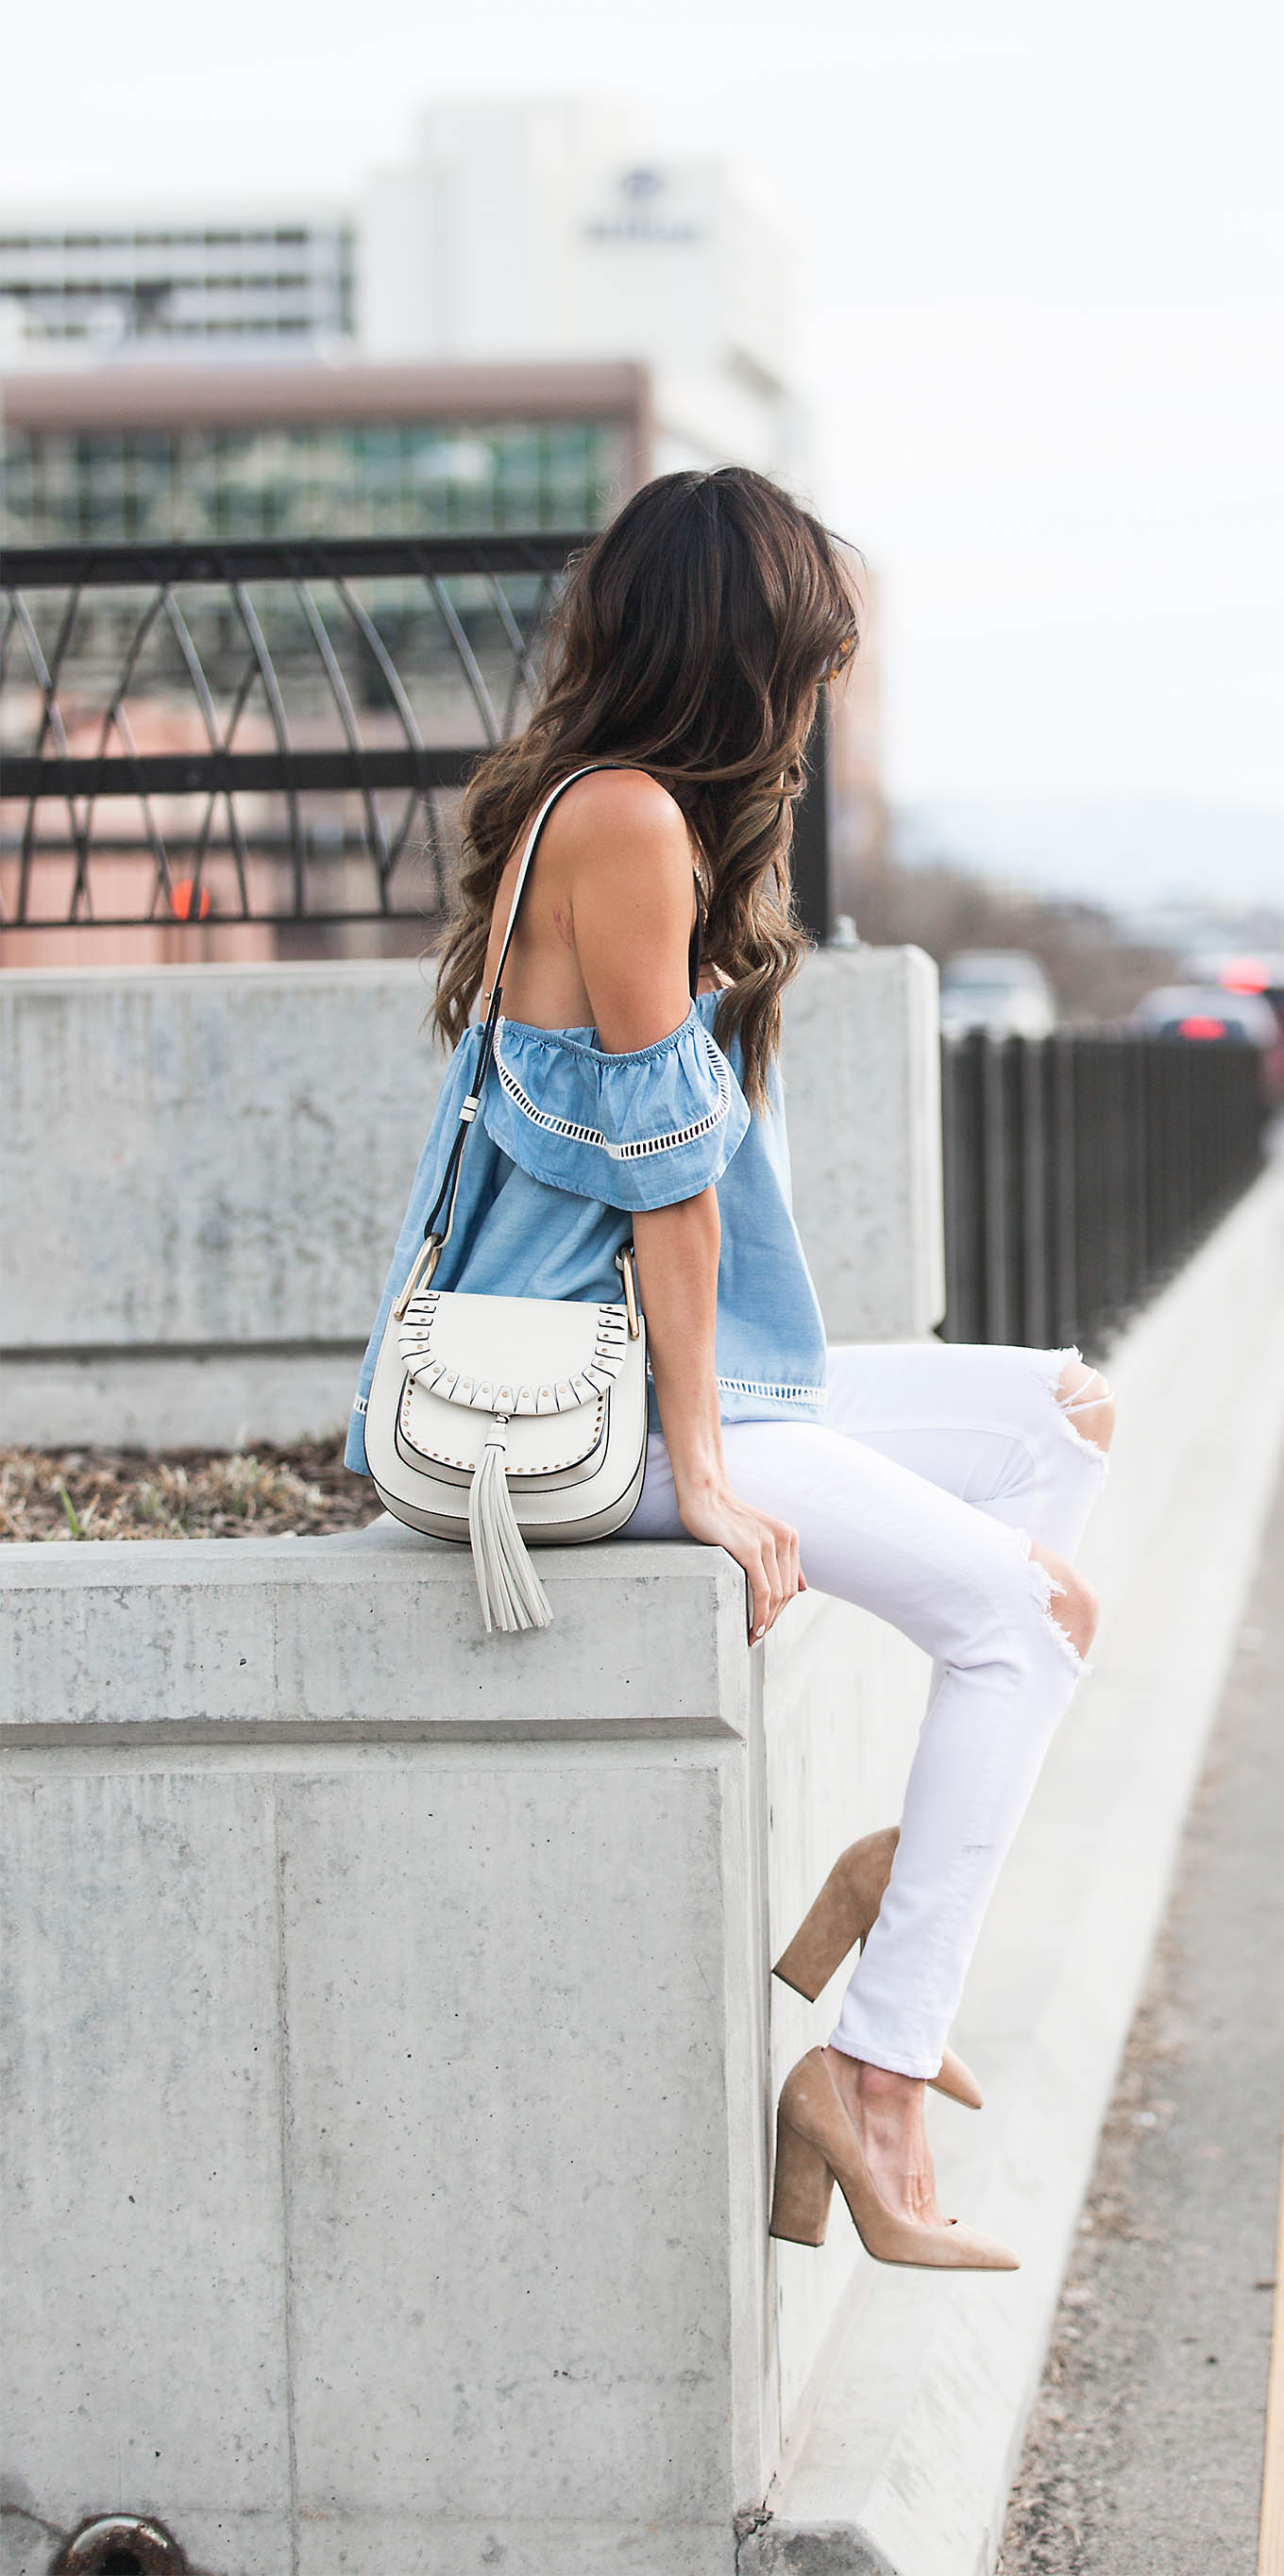 The off the shoulder top trend is one which is coming back with a bang this spring! Christine Andrew wears the look on a beautiful embroidered denim top, paired with white jeans - the ultimate spring classic. Top/Jeans: Bloomingdale's, Heels: Intermix.